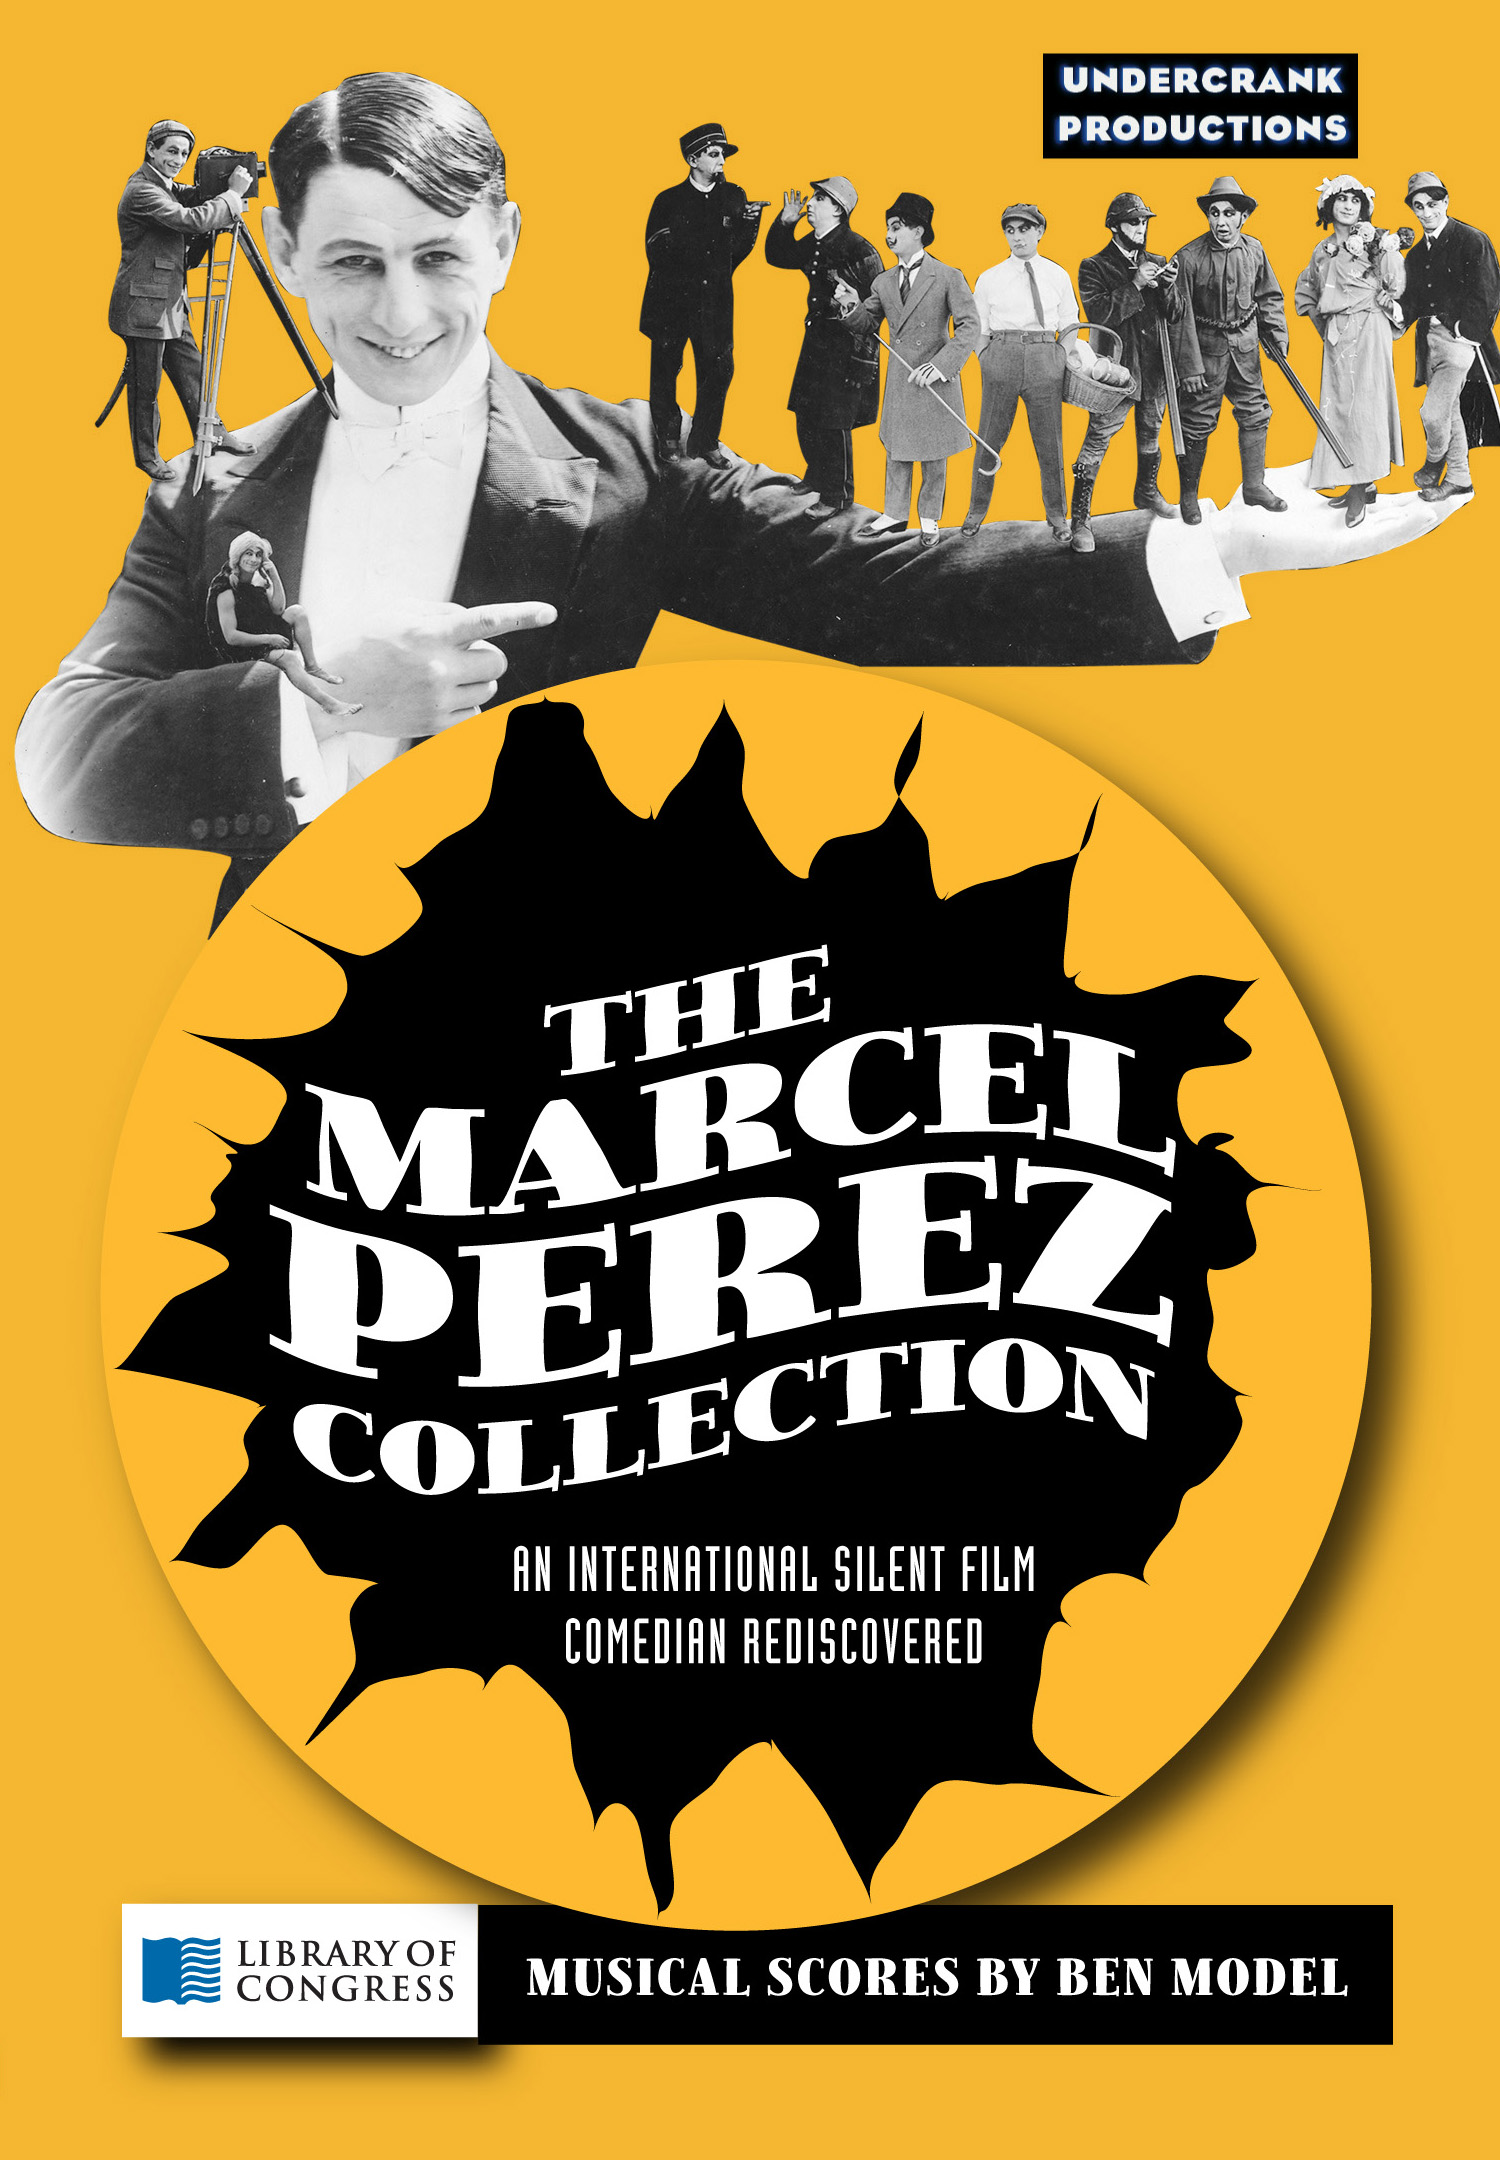 NEW DVD COLLECTION OF FORGOTTEN SILENT FILM STAR MARCEL PEREZ